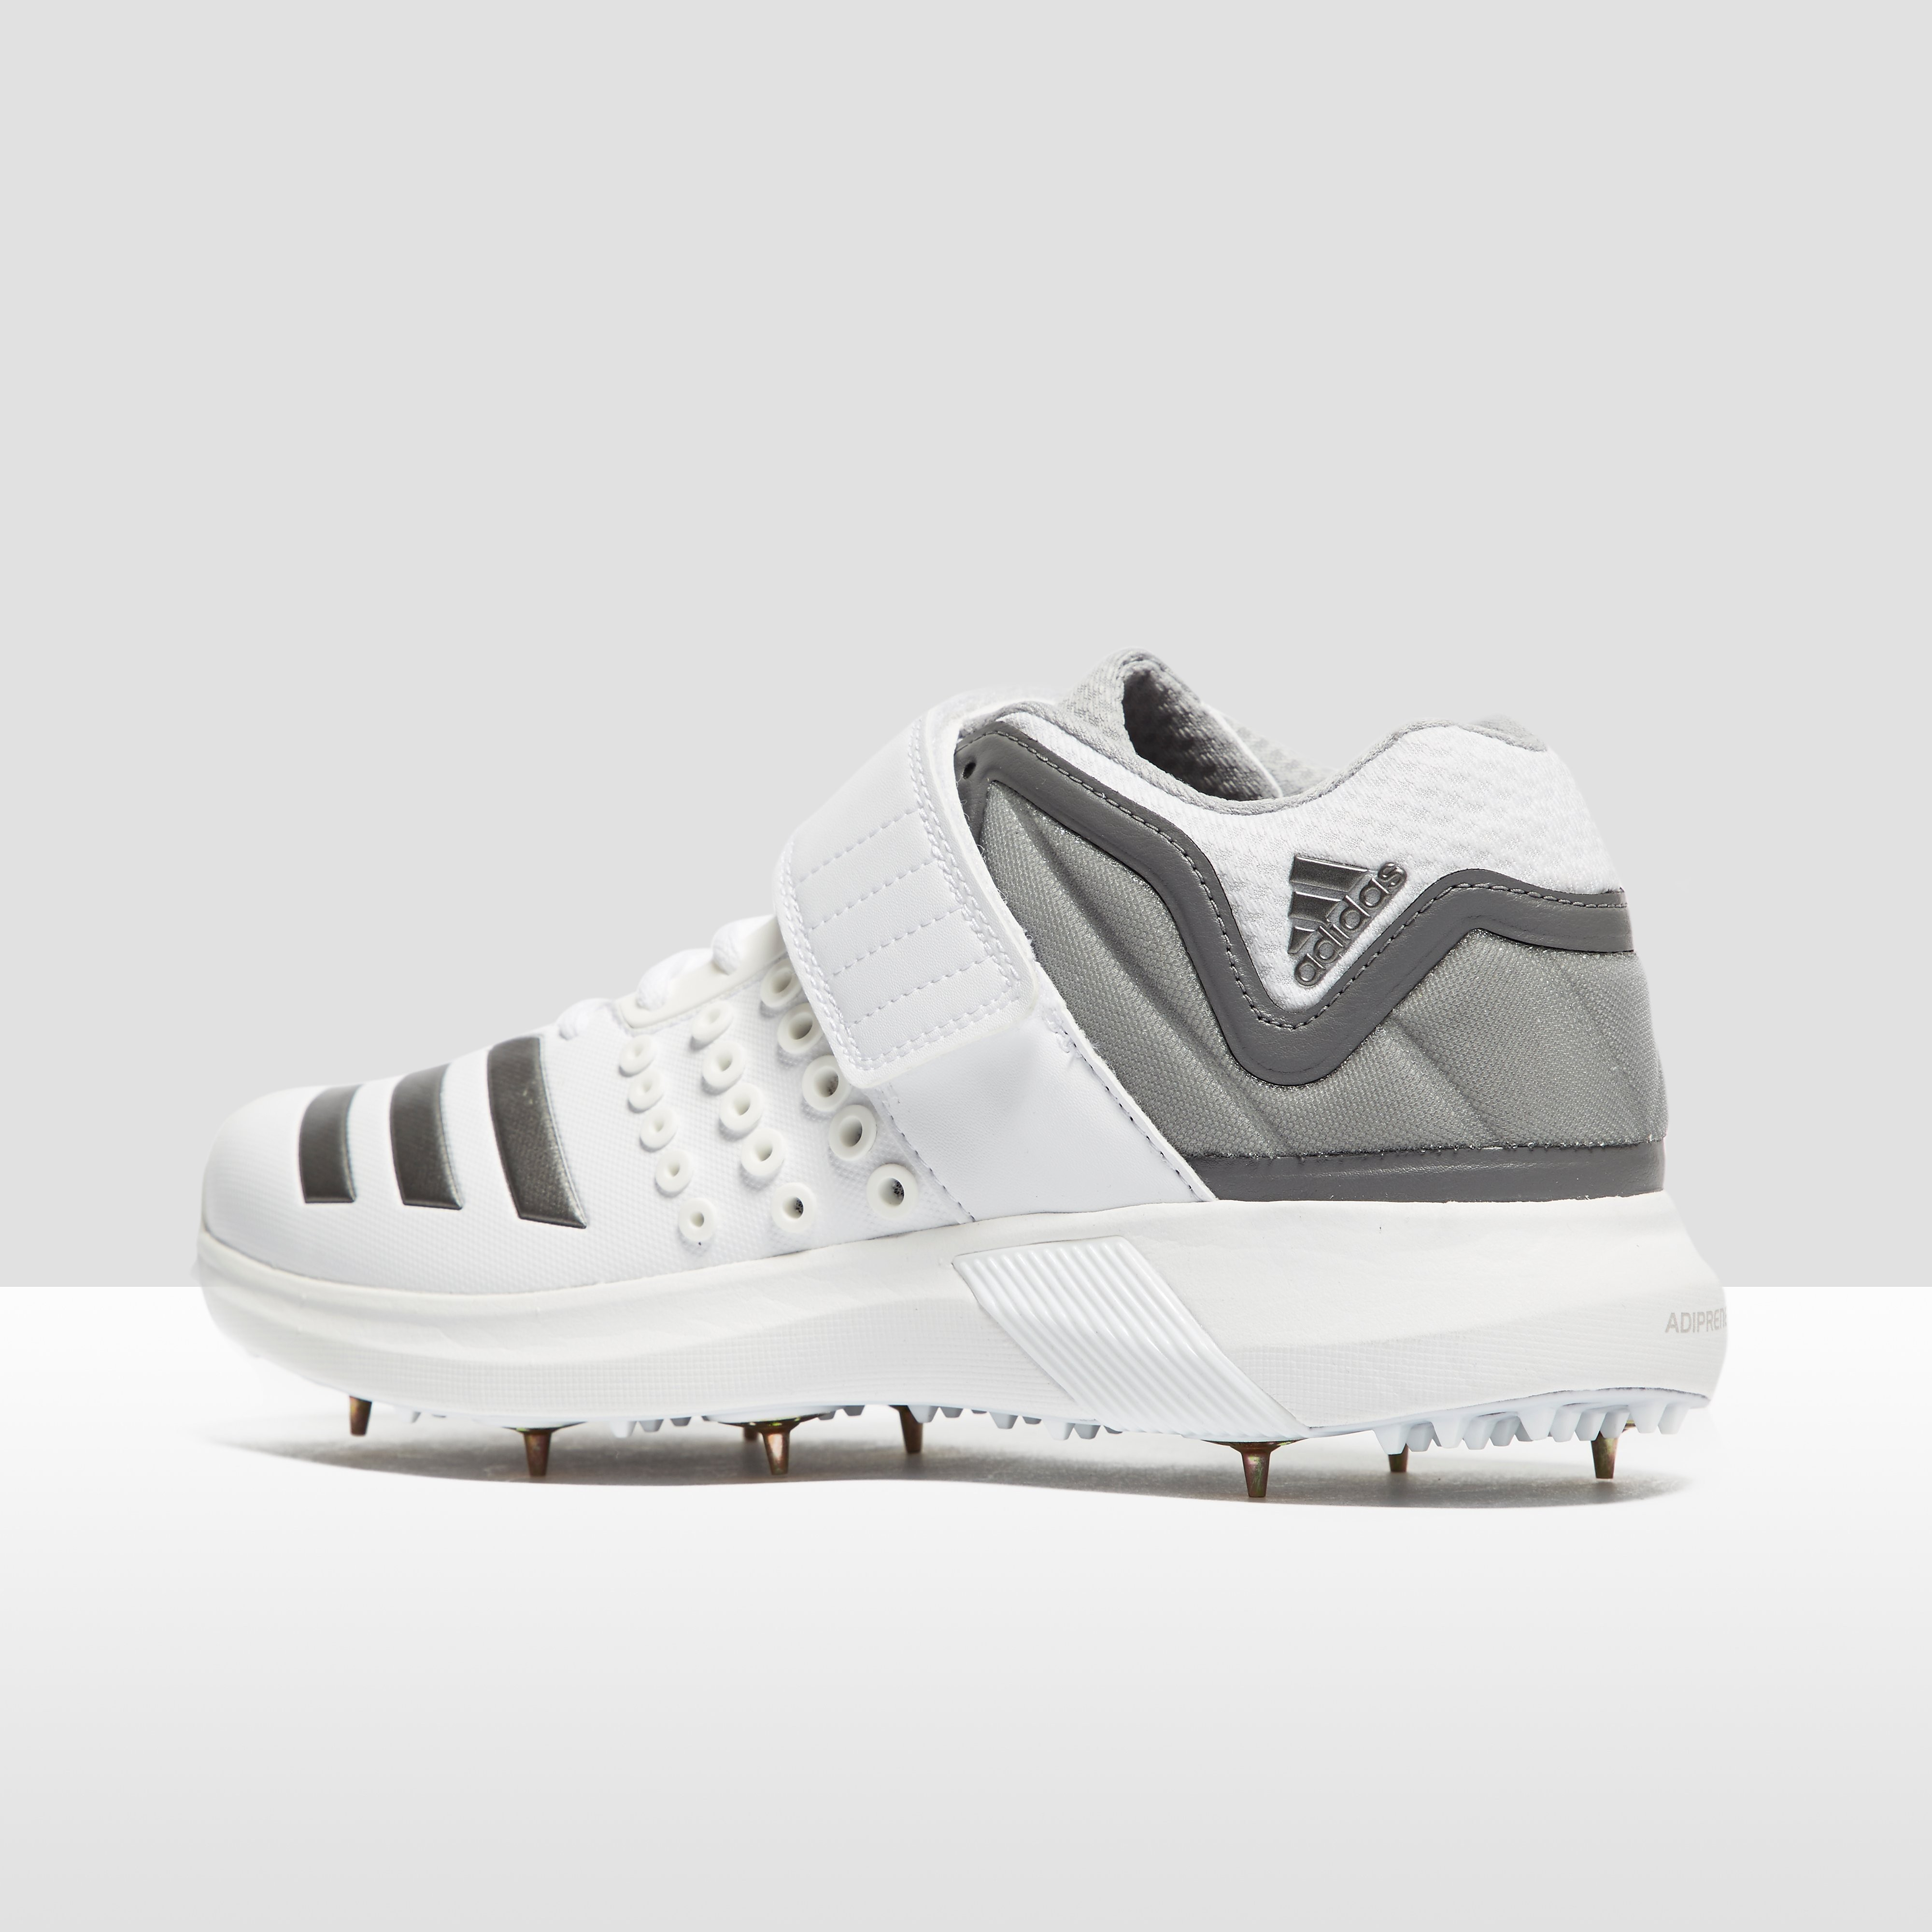 adidas VECTOR MID MEN'S CRICKET SHOES